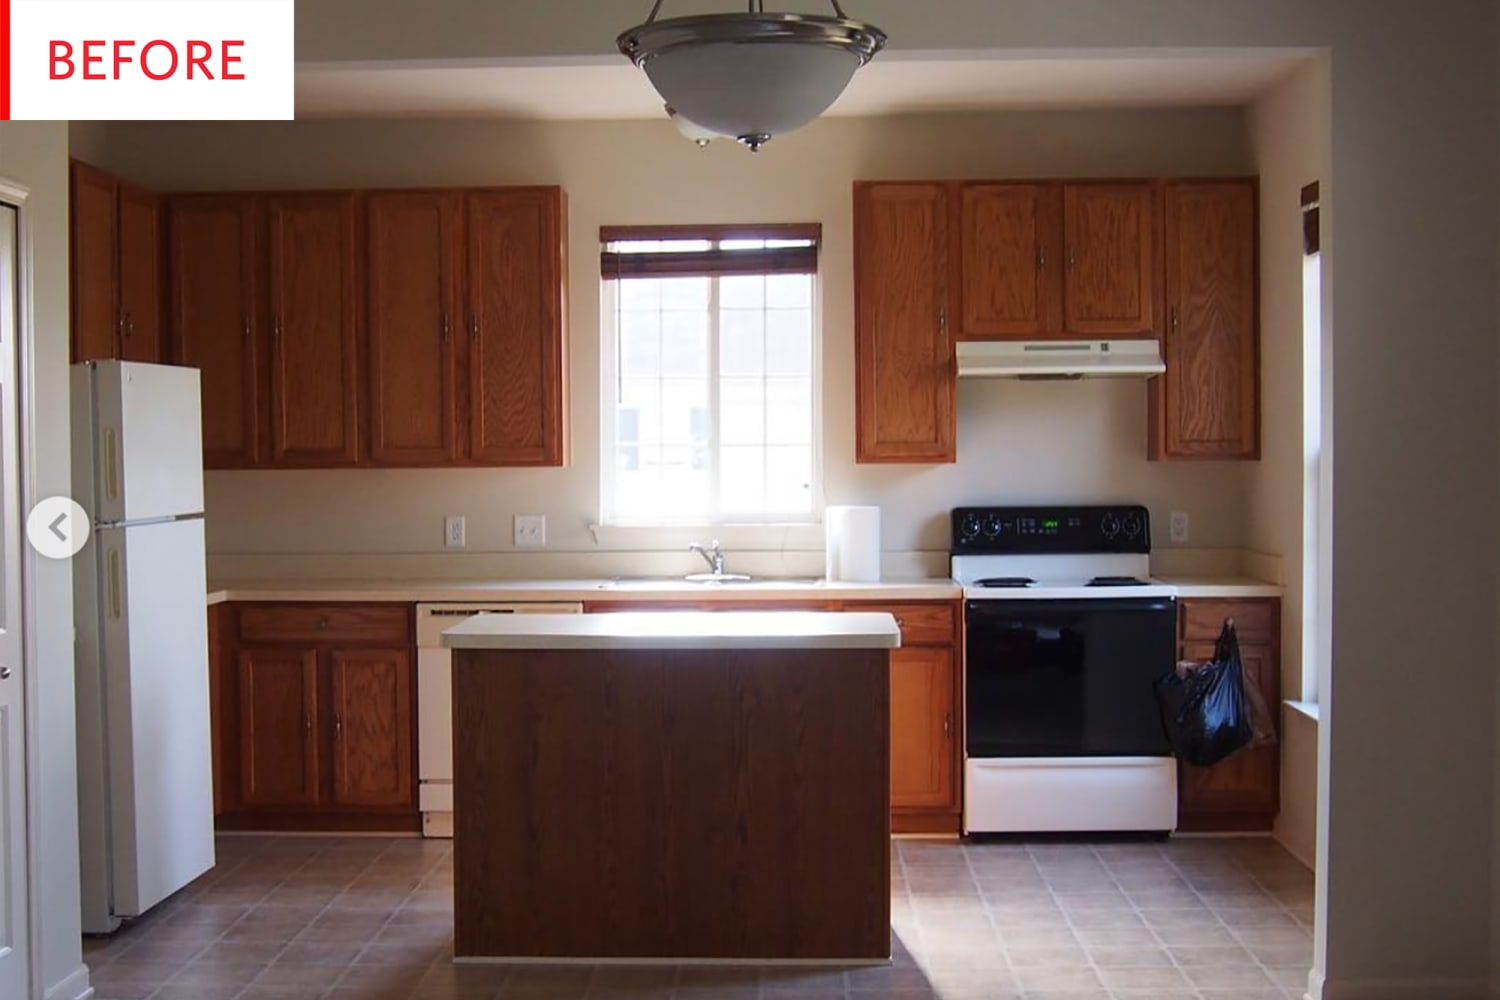 The 12 Best Kitchen Before & Afters We Saw in 2019